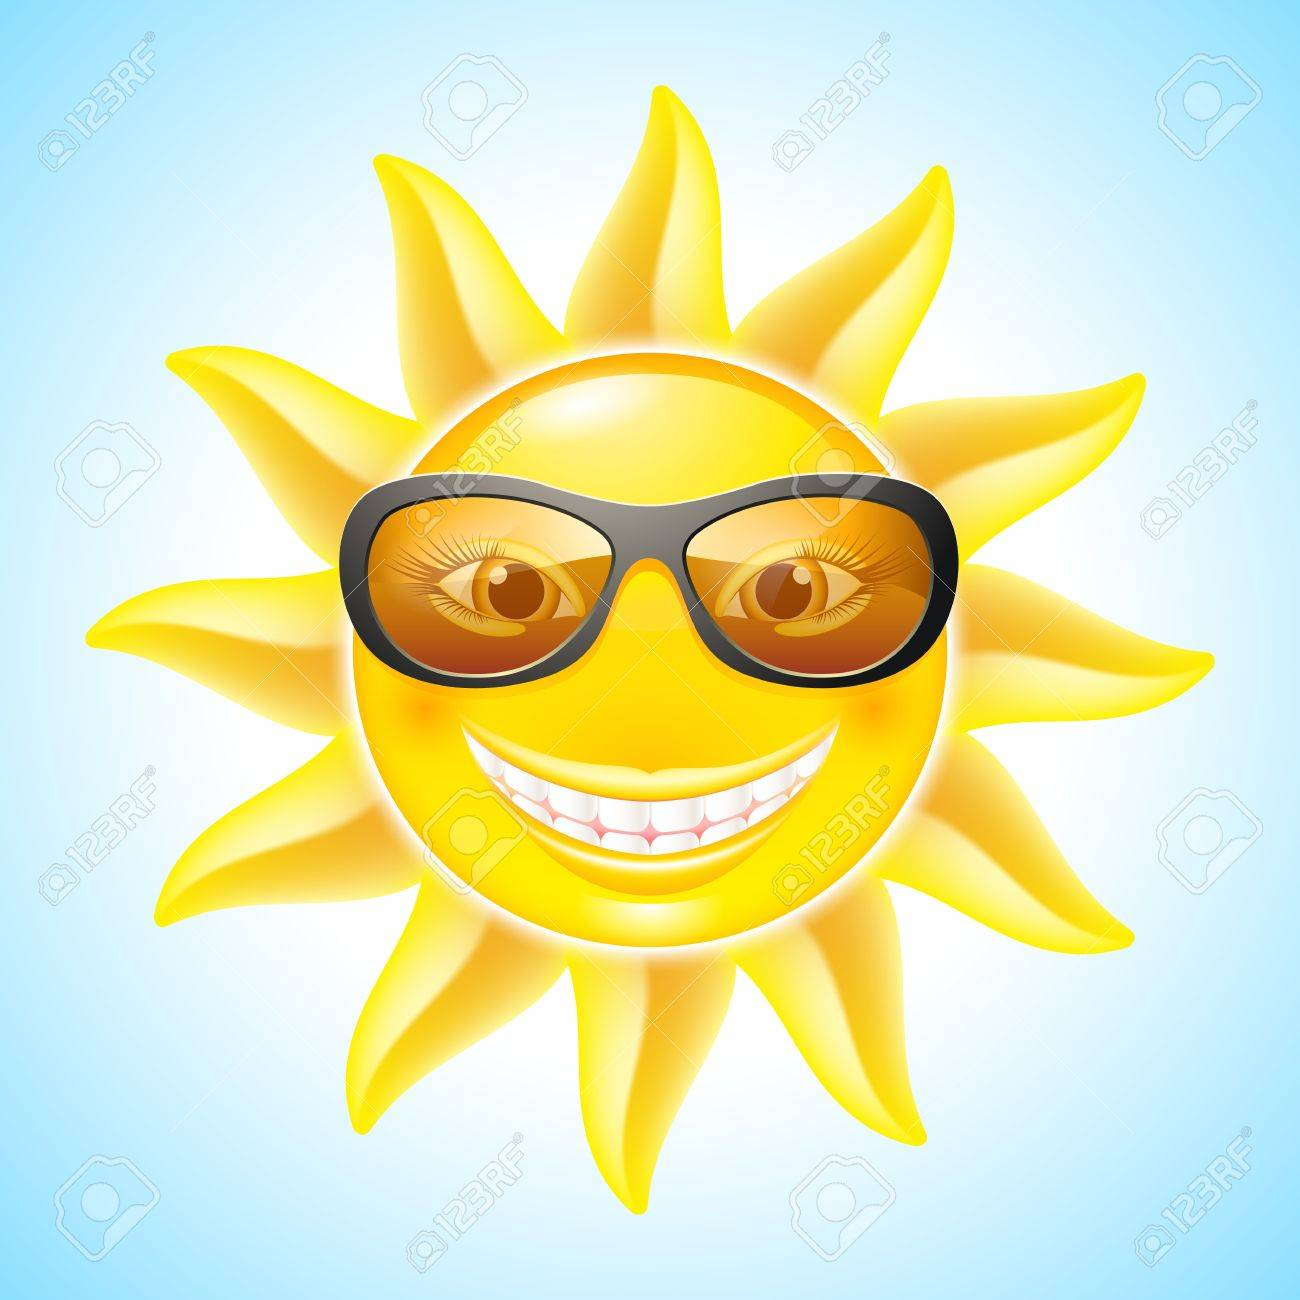 Smiling sun with sunglasses - Cool Smiling Sun With Sunglasses Cartoon Character For Design Stock Vector 13979492